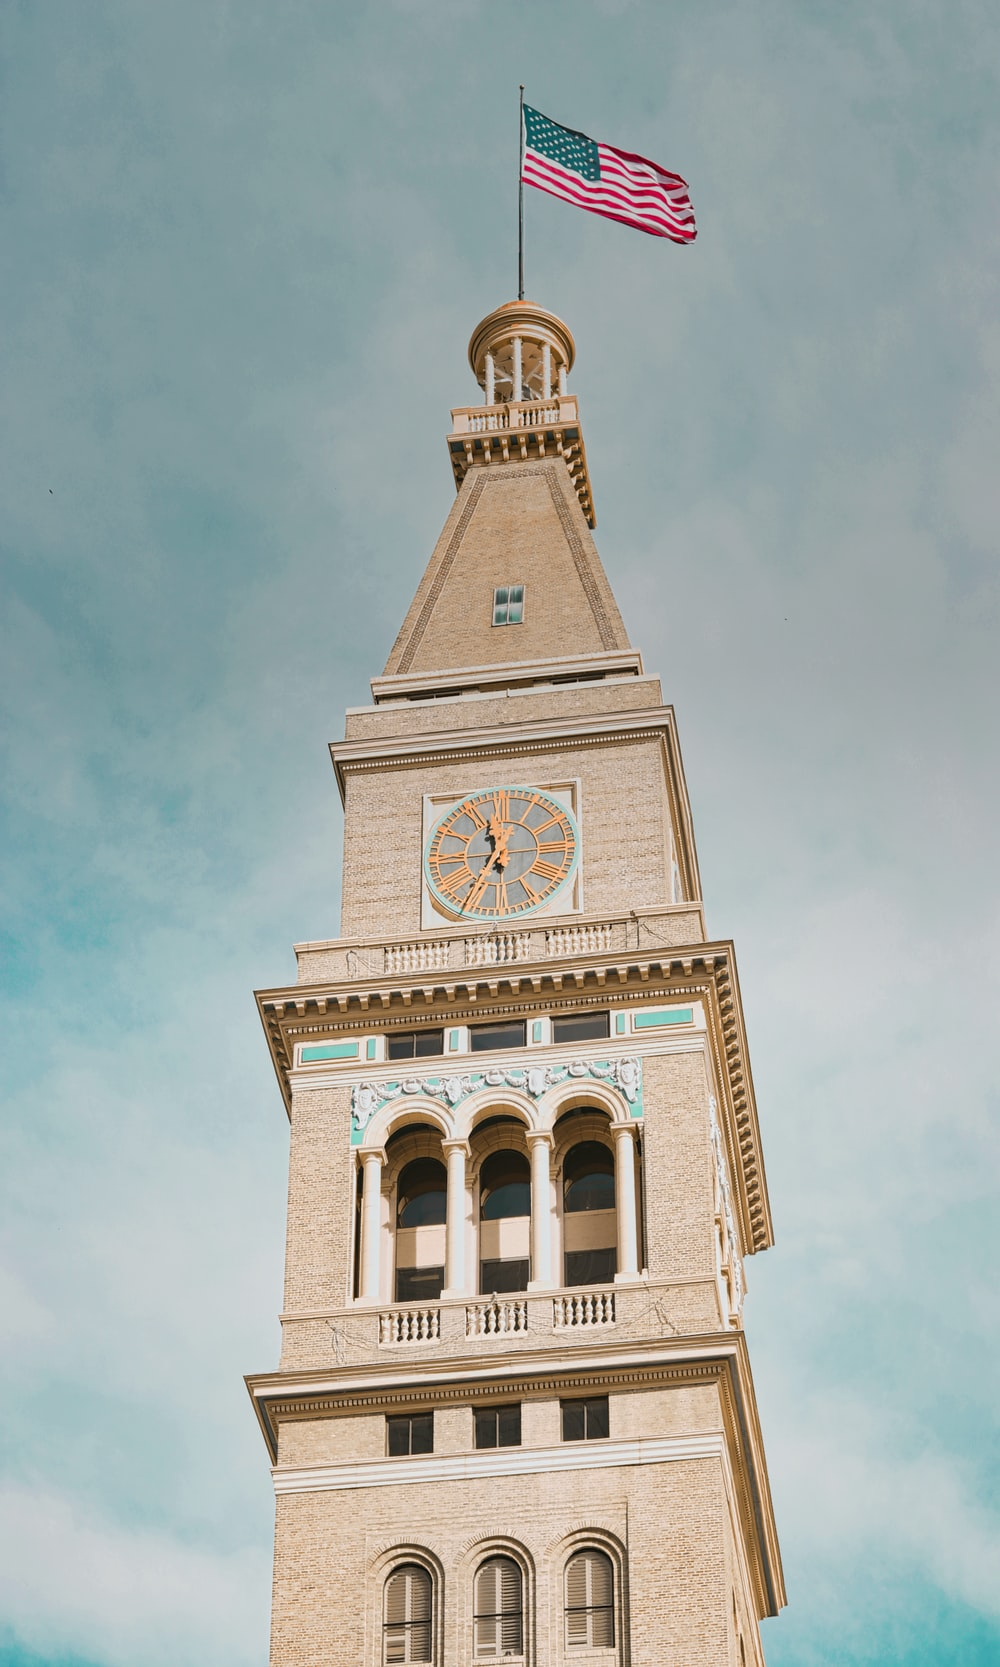 beige and white clock tower